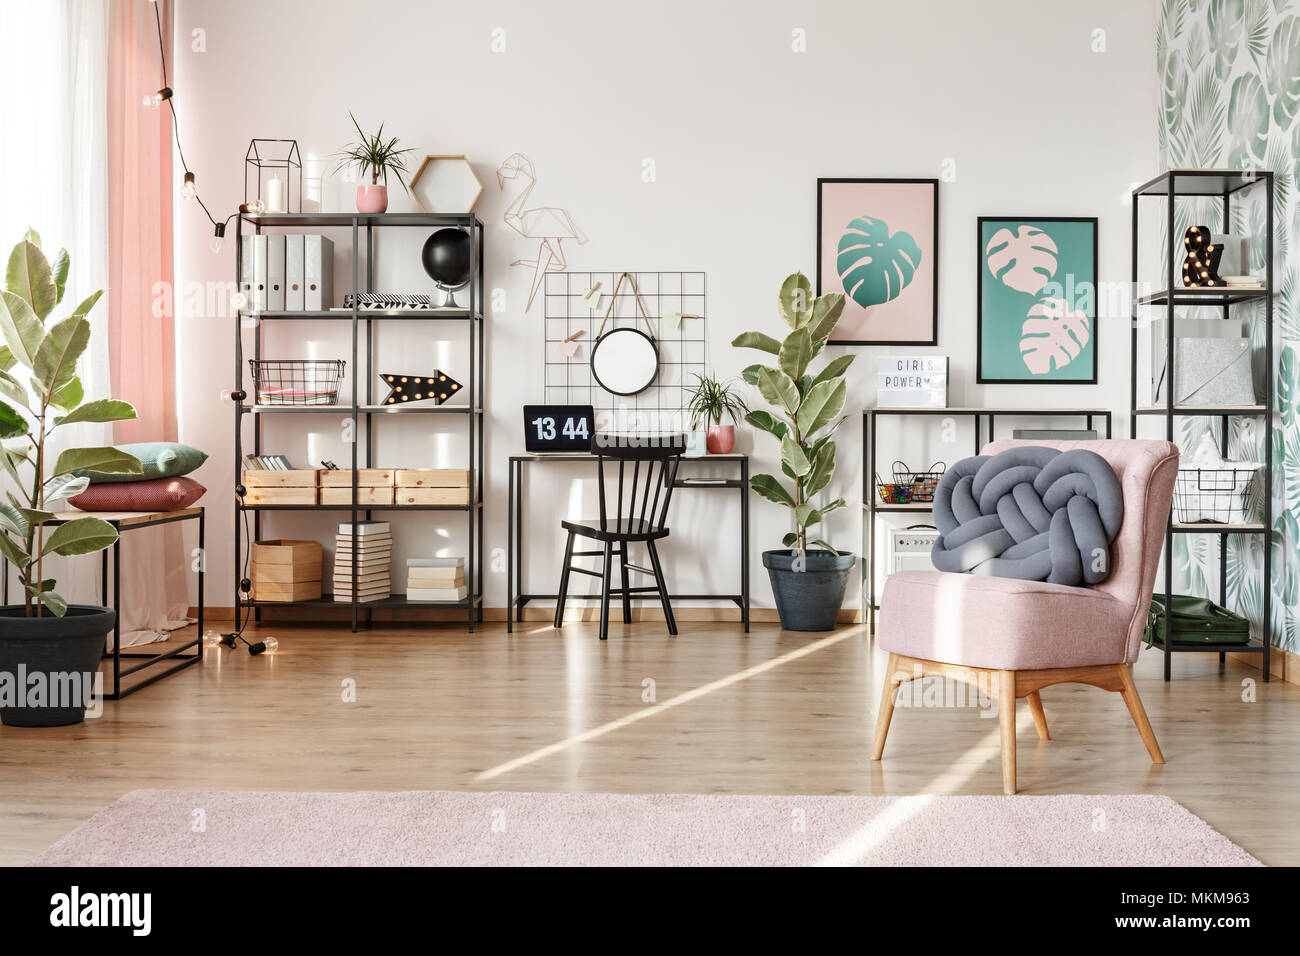 Sun Beams Illuminating A Modern Home Office In A Trendy Living Room  Interior With Industrial Furniture And Pink Elements